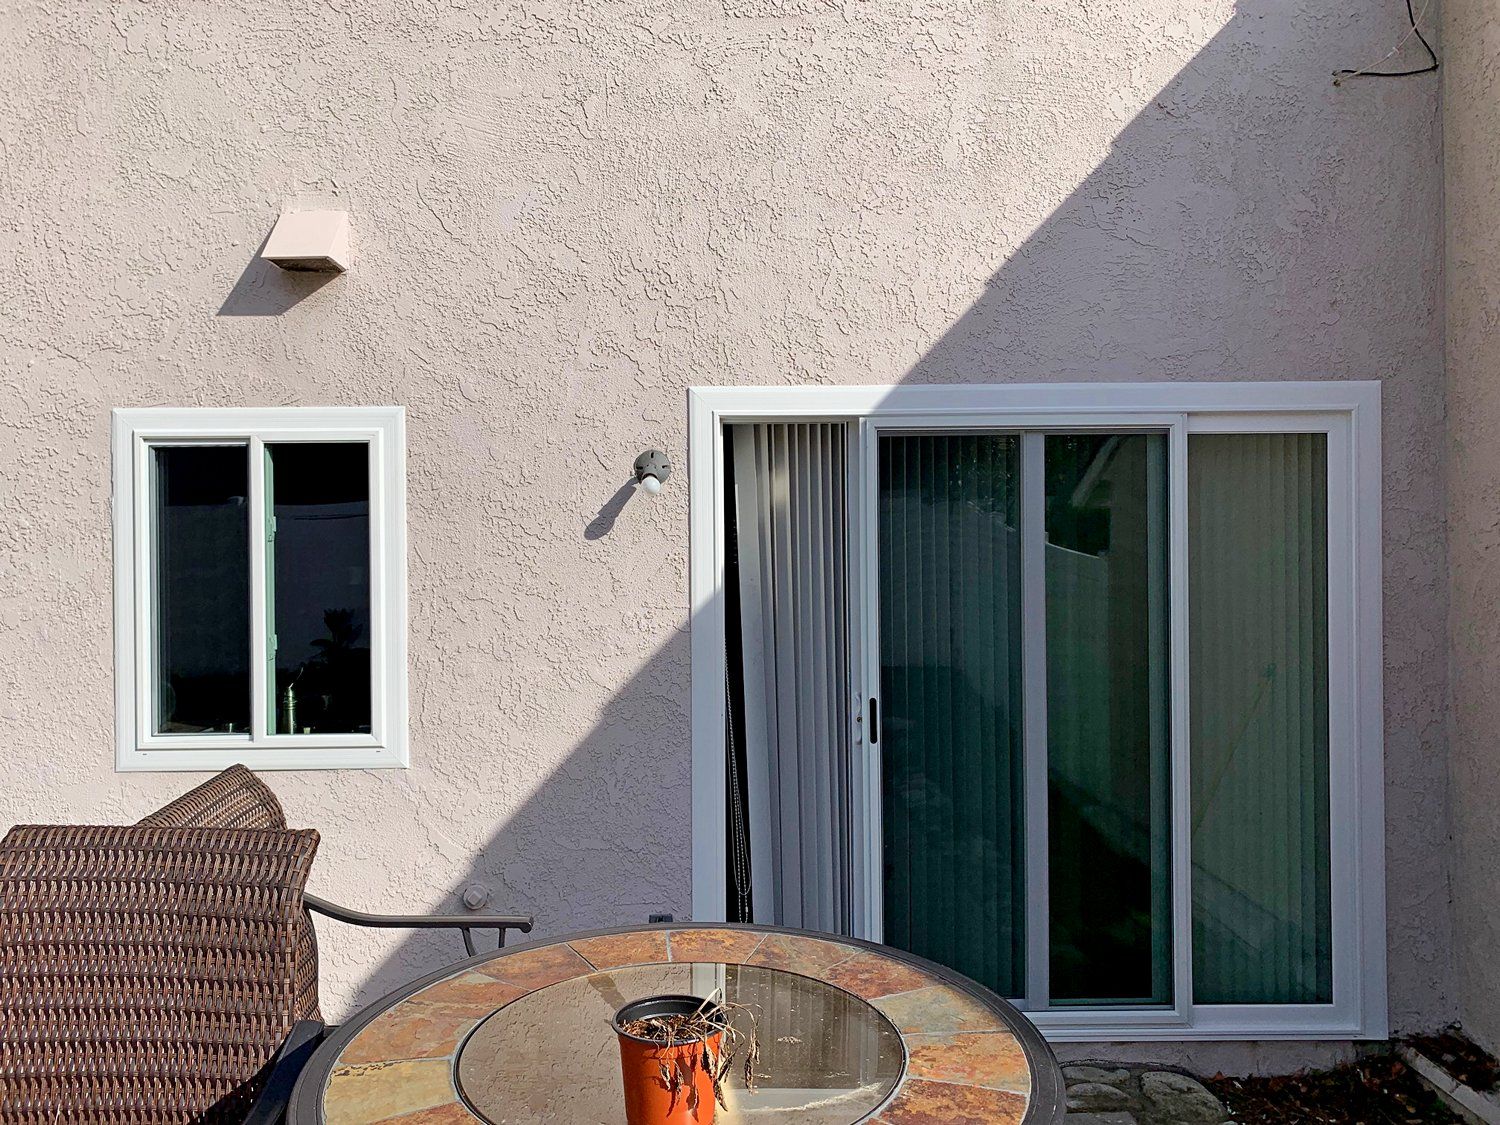 Anlin Window and Malibu Slider Door Replacement Project in Rancho Cucamonga